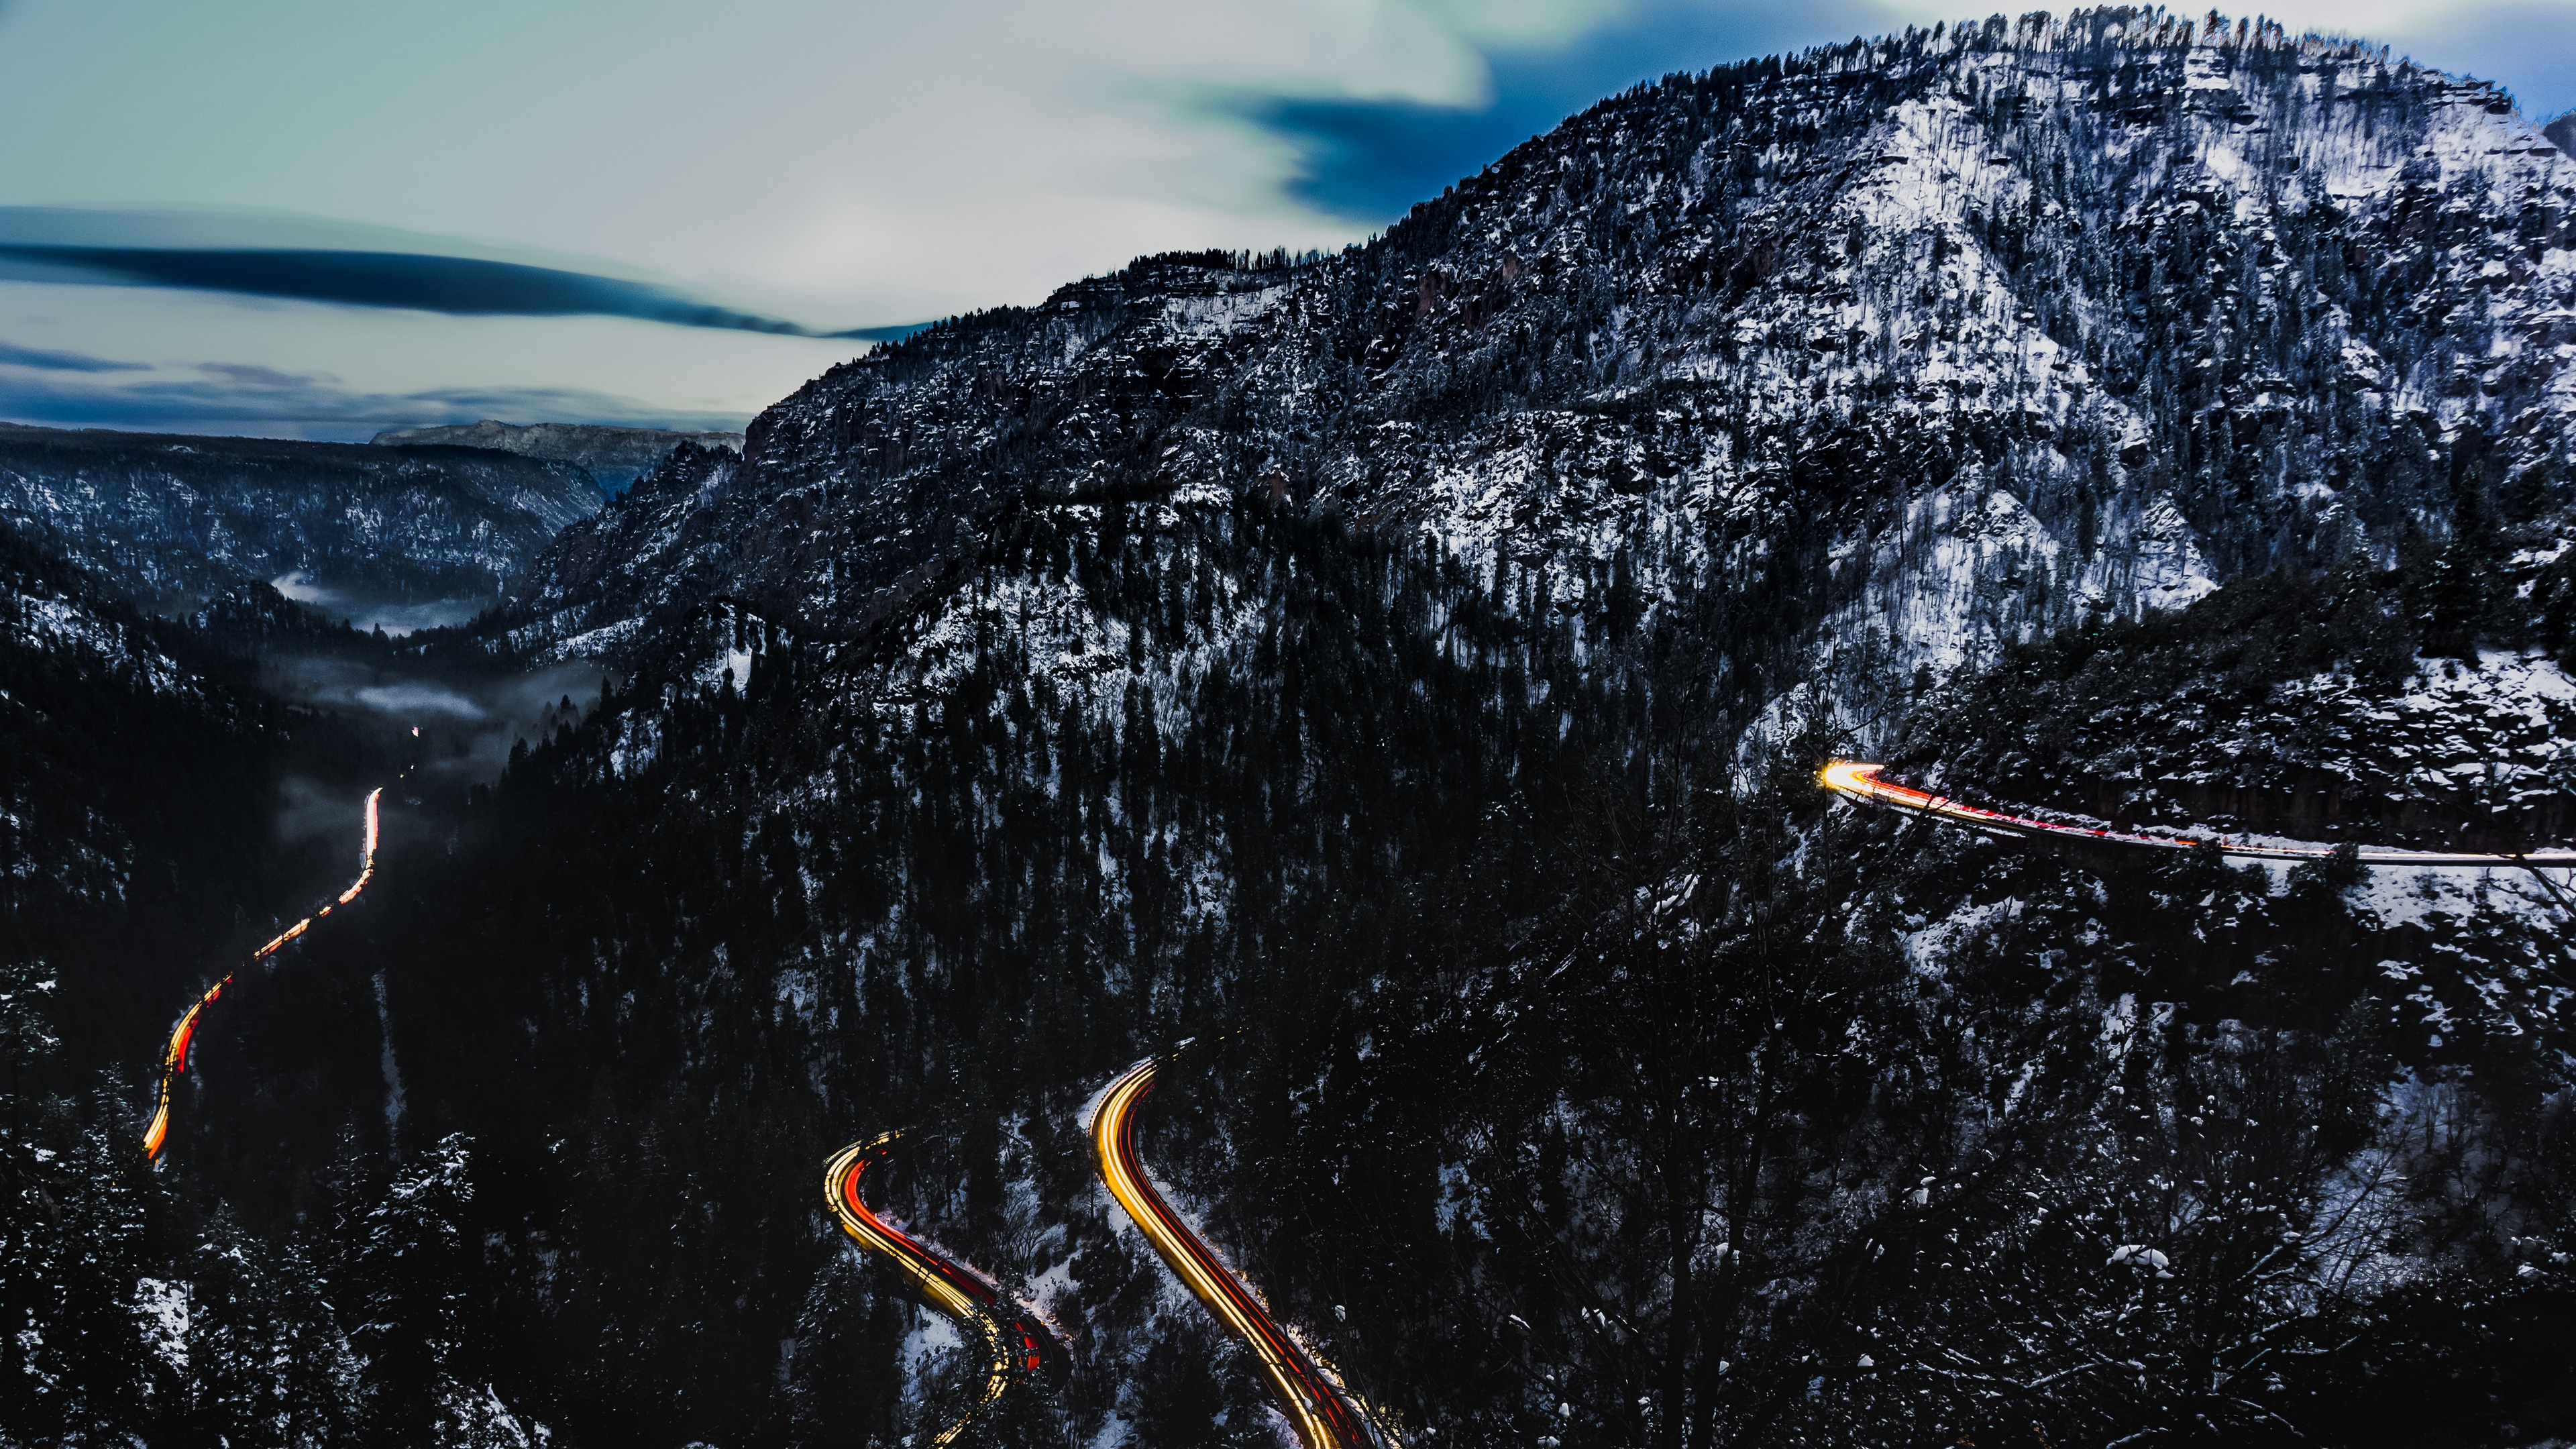 mountains road top light snowy 4k 1541116683 - mountains, road, top, light, snowy 4k - top, Road, Mountains